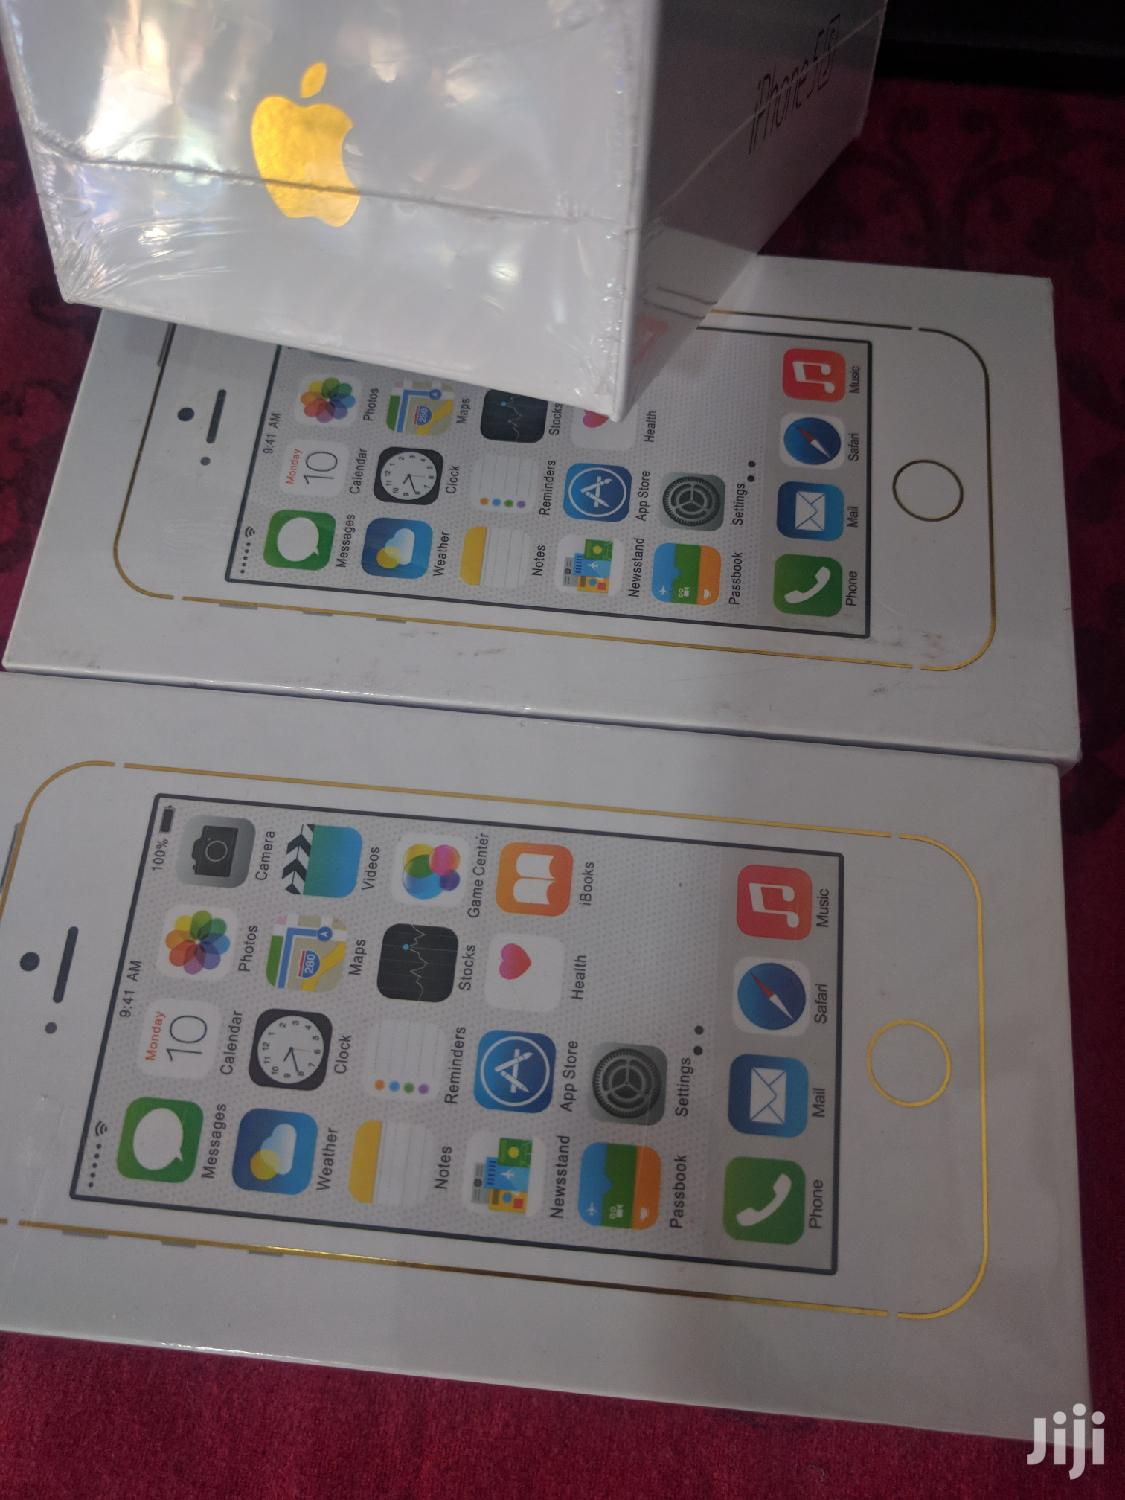 New Apple iPhone 5s 16 GB Gold | Mobile Phones for sale in Kokomlemle, Greater Accra, Ghana